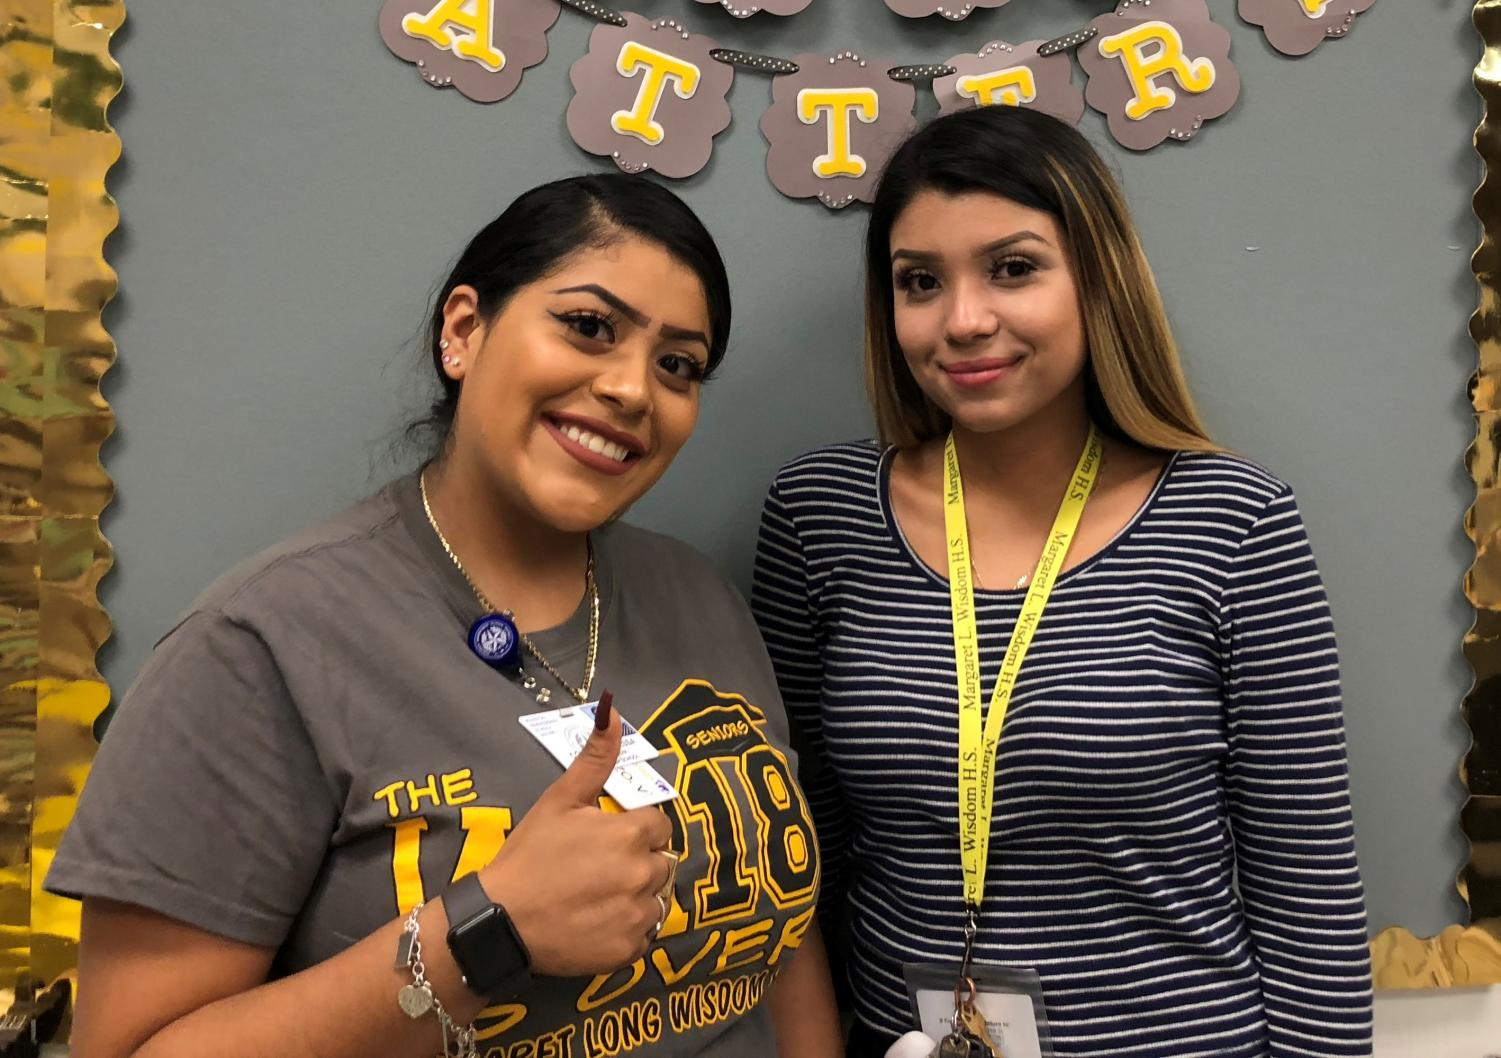 Collazo (left) and Abeja (right) both recently graduated from Wisdom HS and are now working here.